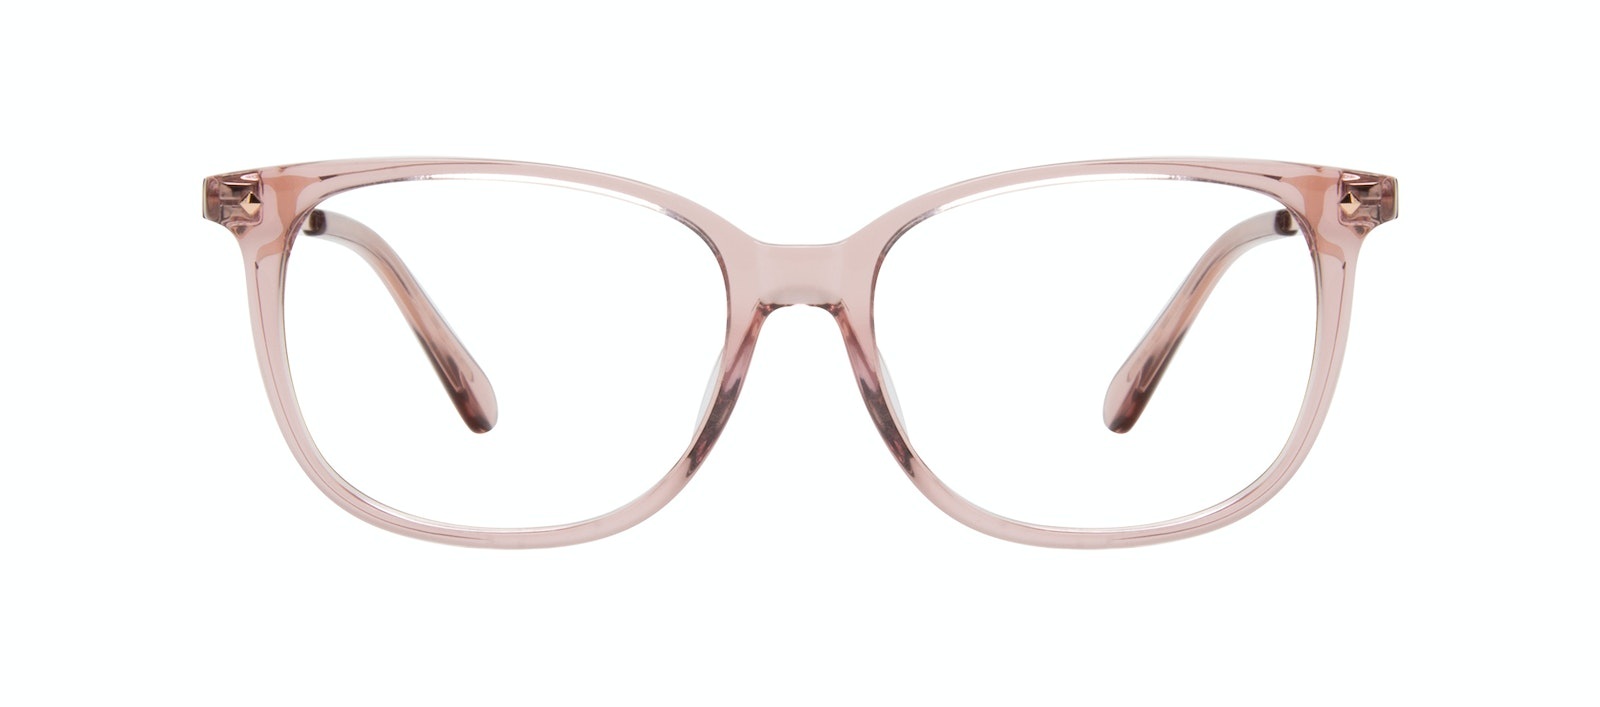 Affordable Fashion Glasses Rectangle Square Eyeglasses Women Refine XS Rose Front